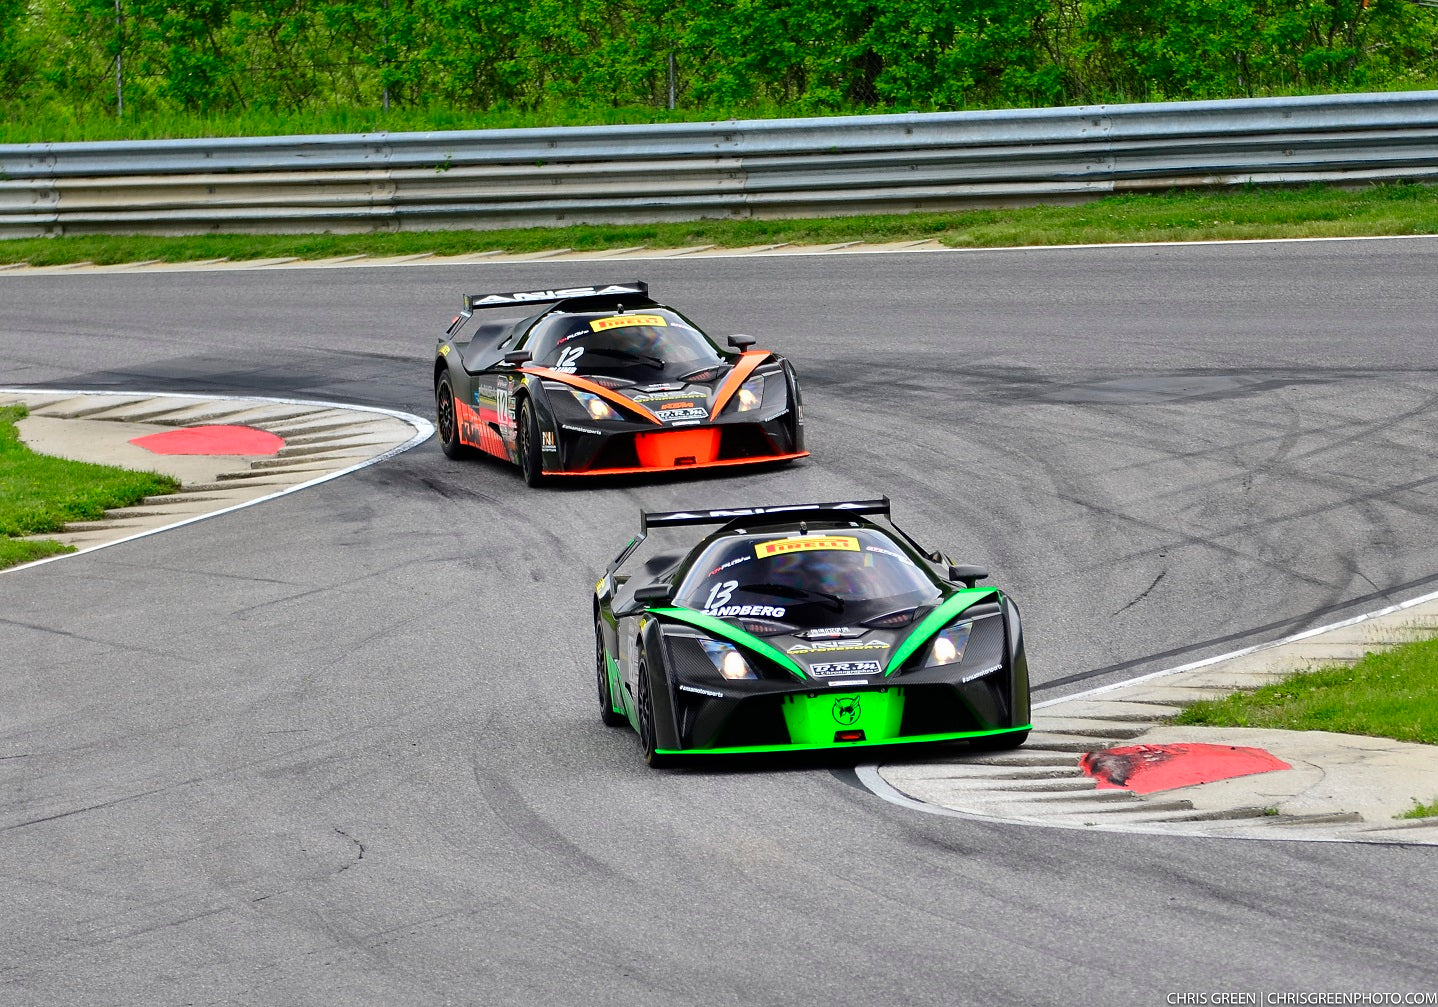 BRETT SANDBERG MOVES TO SECOND PLACE AFTER LIME ROCK PARK WEEKEND